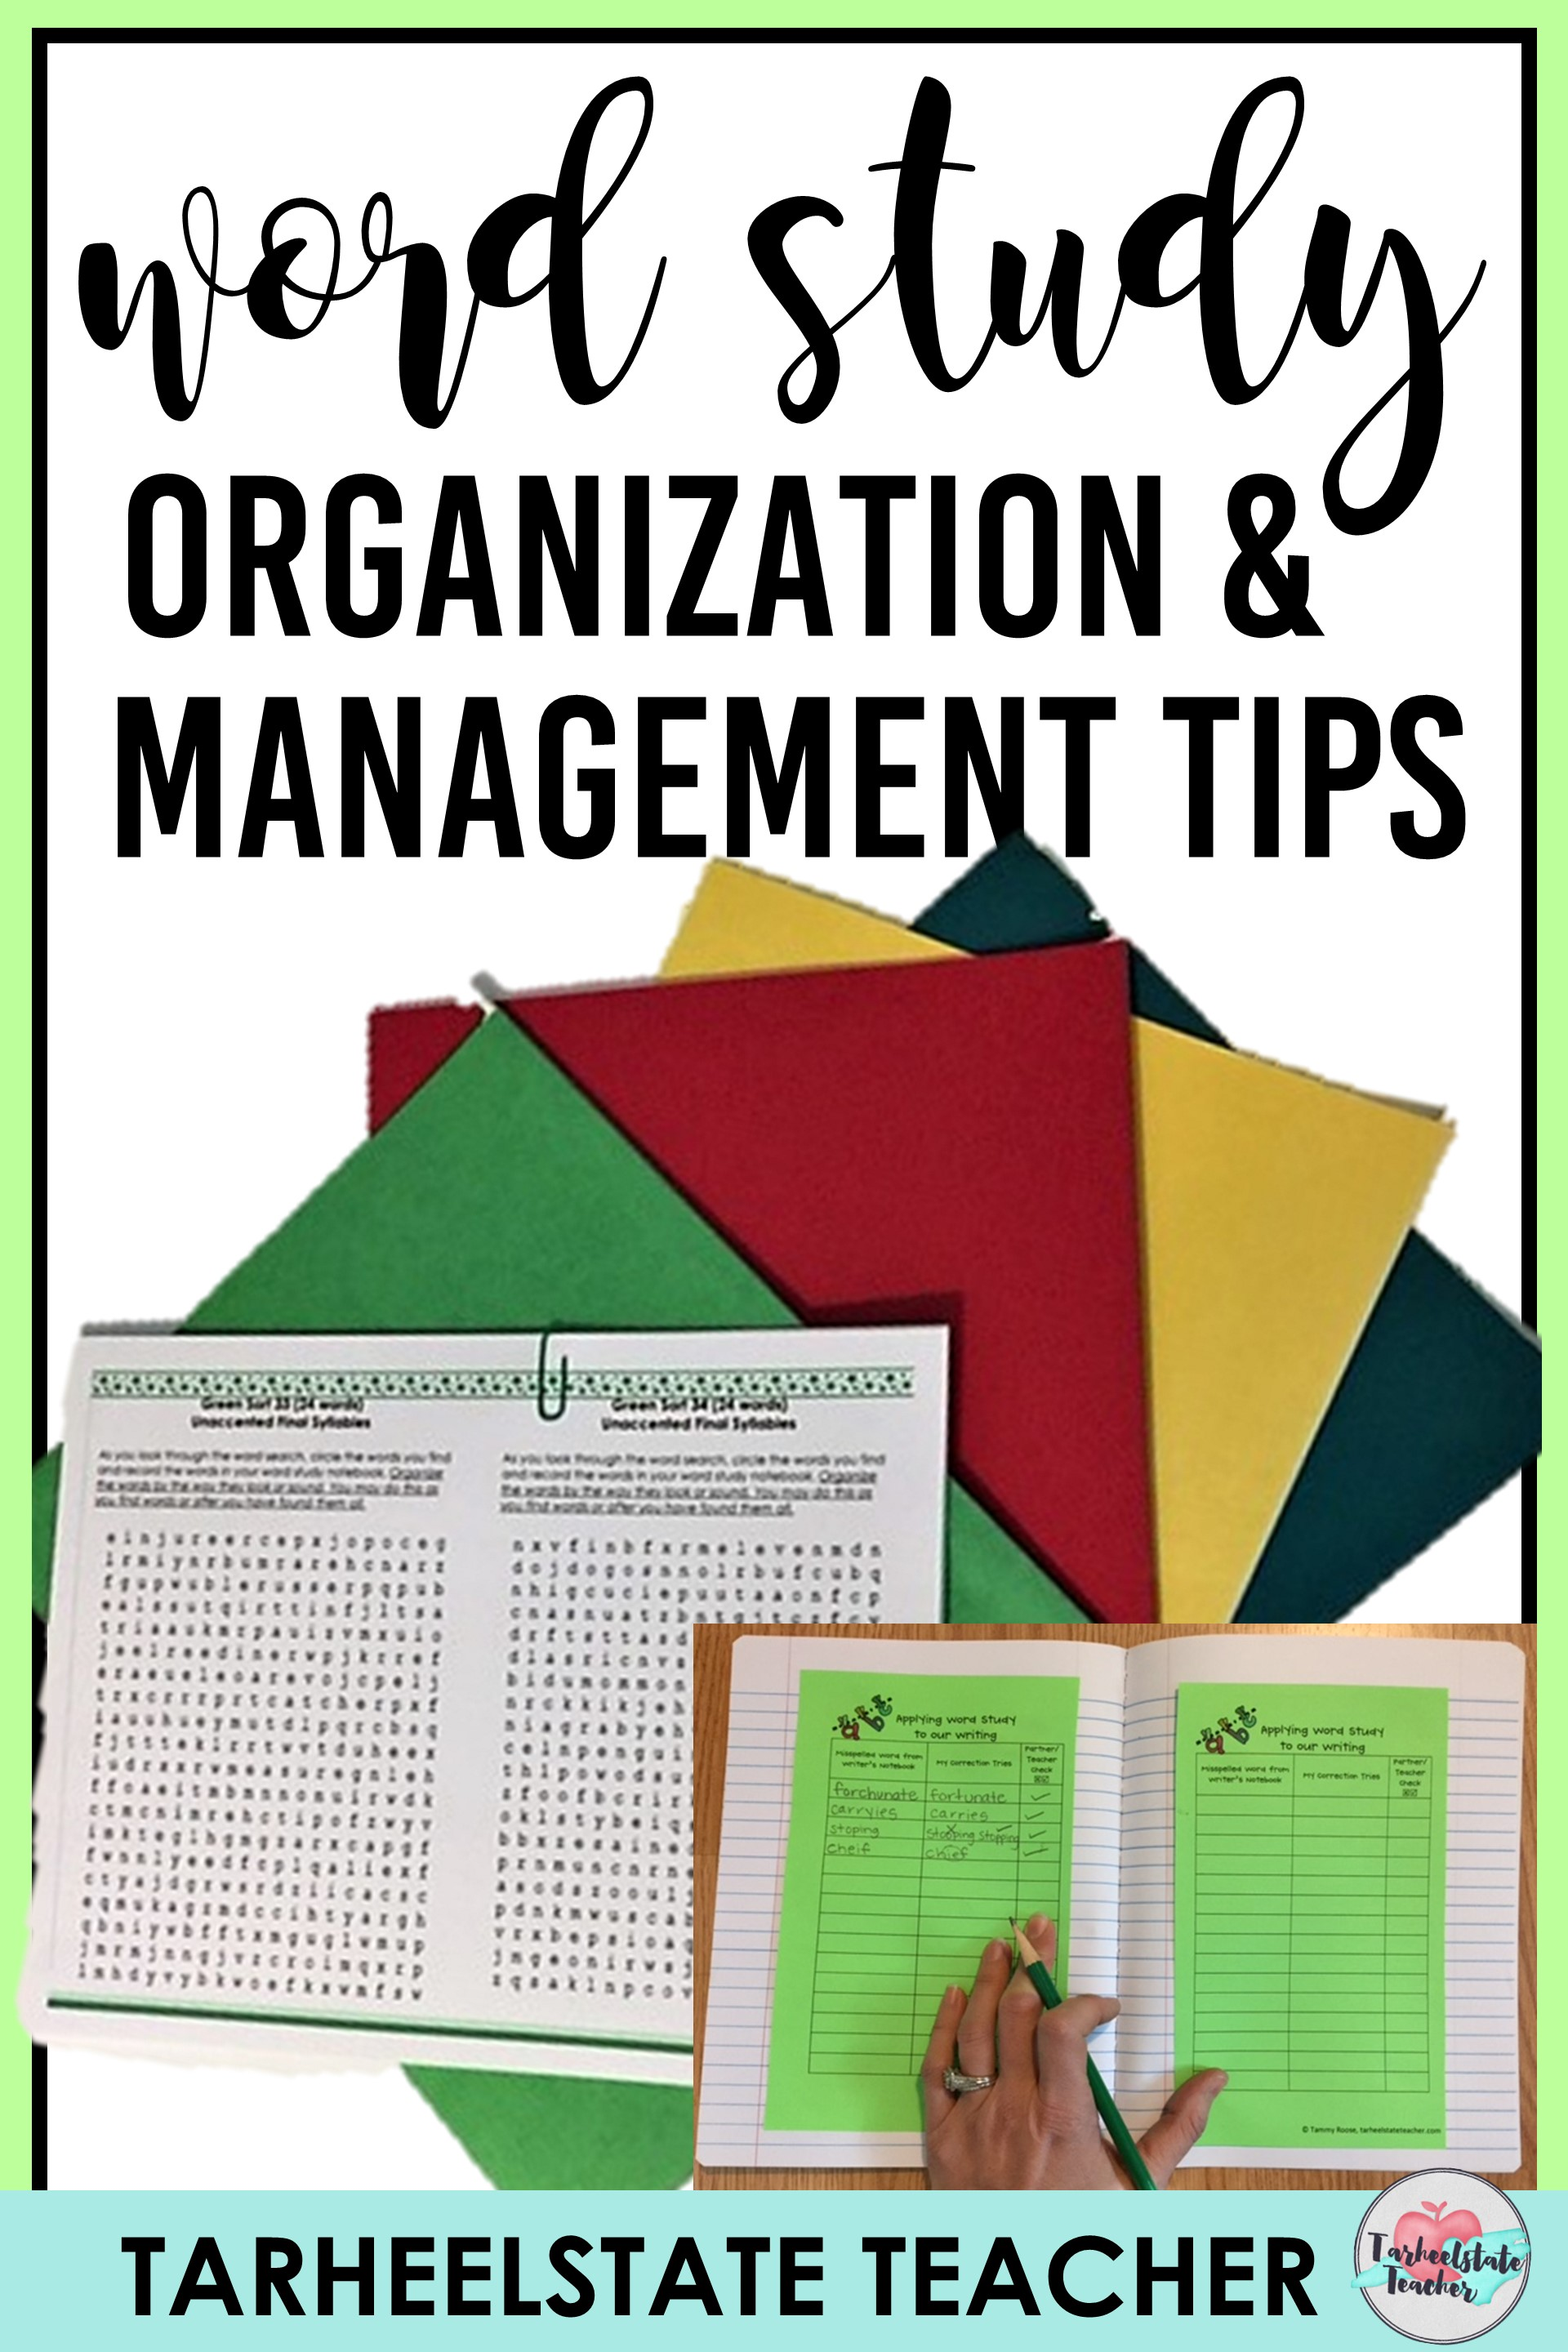 how to manage and organize word study.jpg